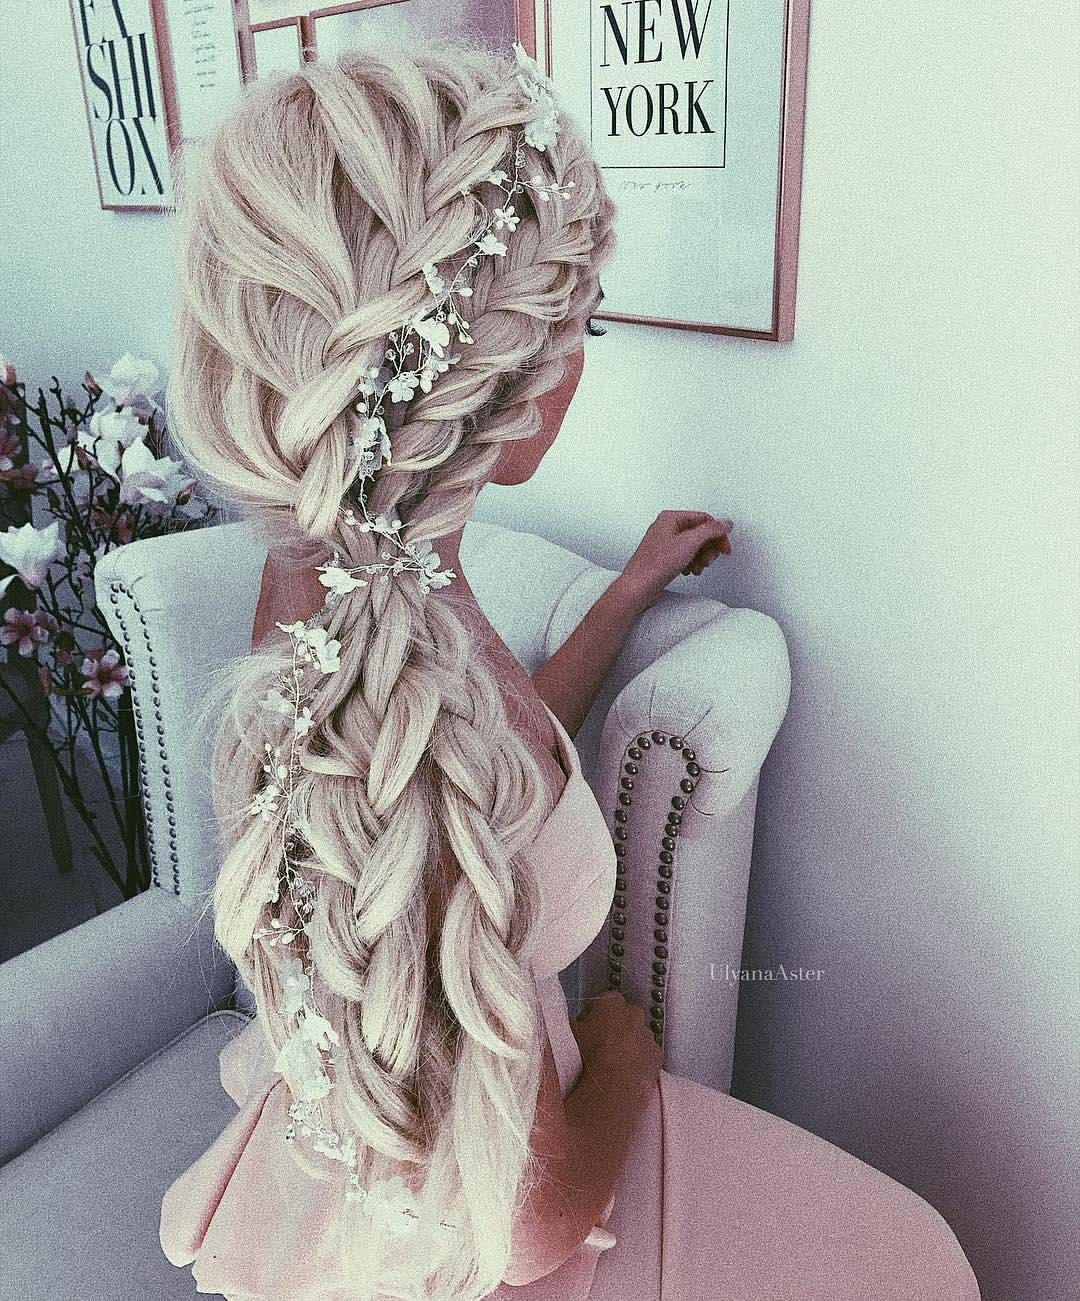 "34.7k Likes, 69 Comments – hairsandstyles ♡ (hairsandstyles) on Instagram: ""Beautiful hairstyle! Yay?? credit Ul'yana Zaggie.aster <a class=""pintag"" href=""/explore/hairsandstyles/"" title=""#hairsandstyles explore Pinterest"">#hairsandstyles</a>""<p><a href=""http://www.homeinteriordesign.org/2018/02/short-guide-to-interior-decoration.html"">Short guide to interior decoration</a></p>"